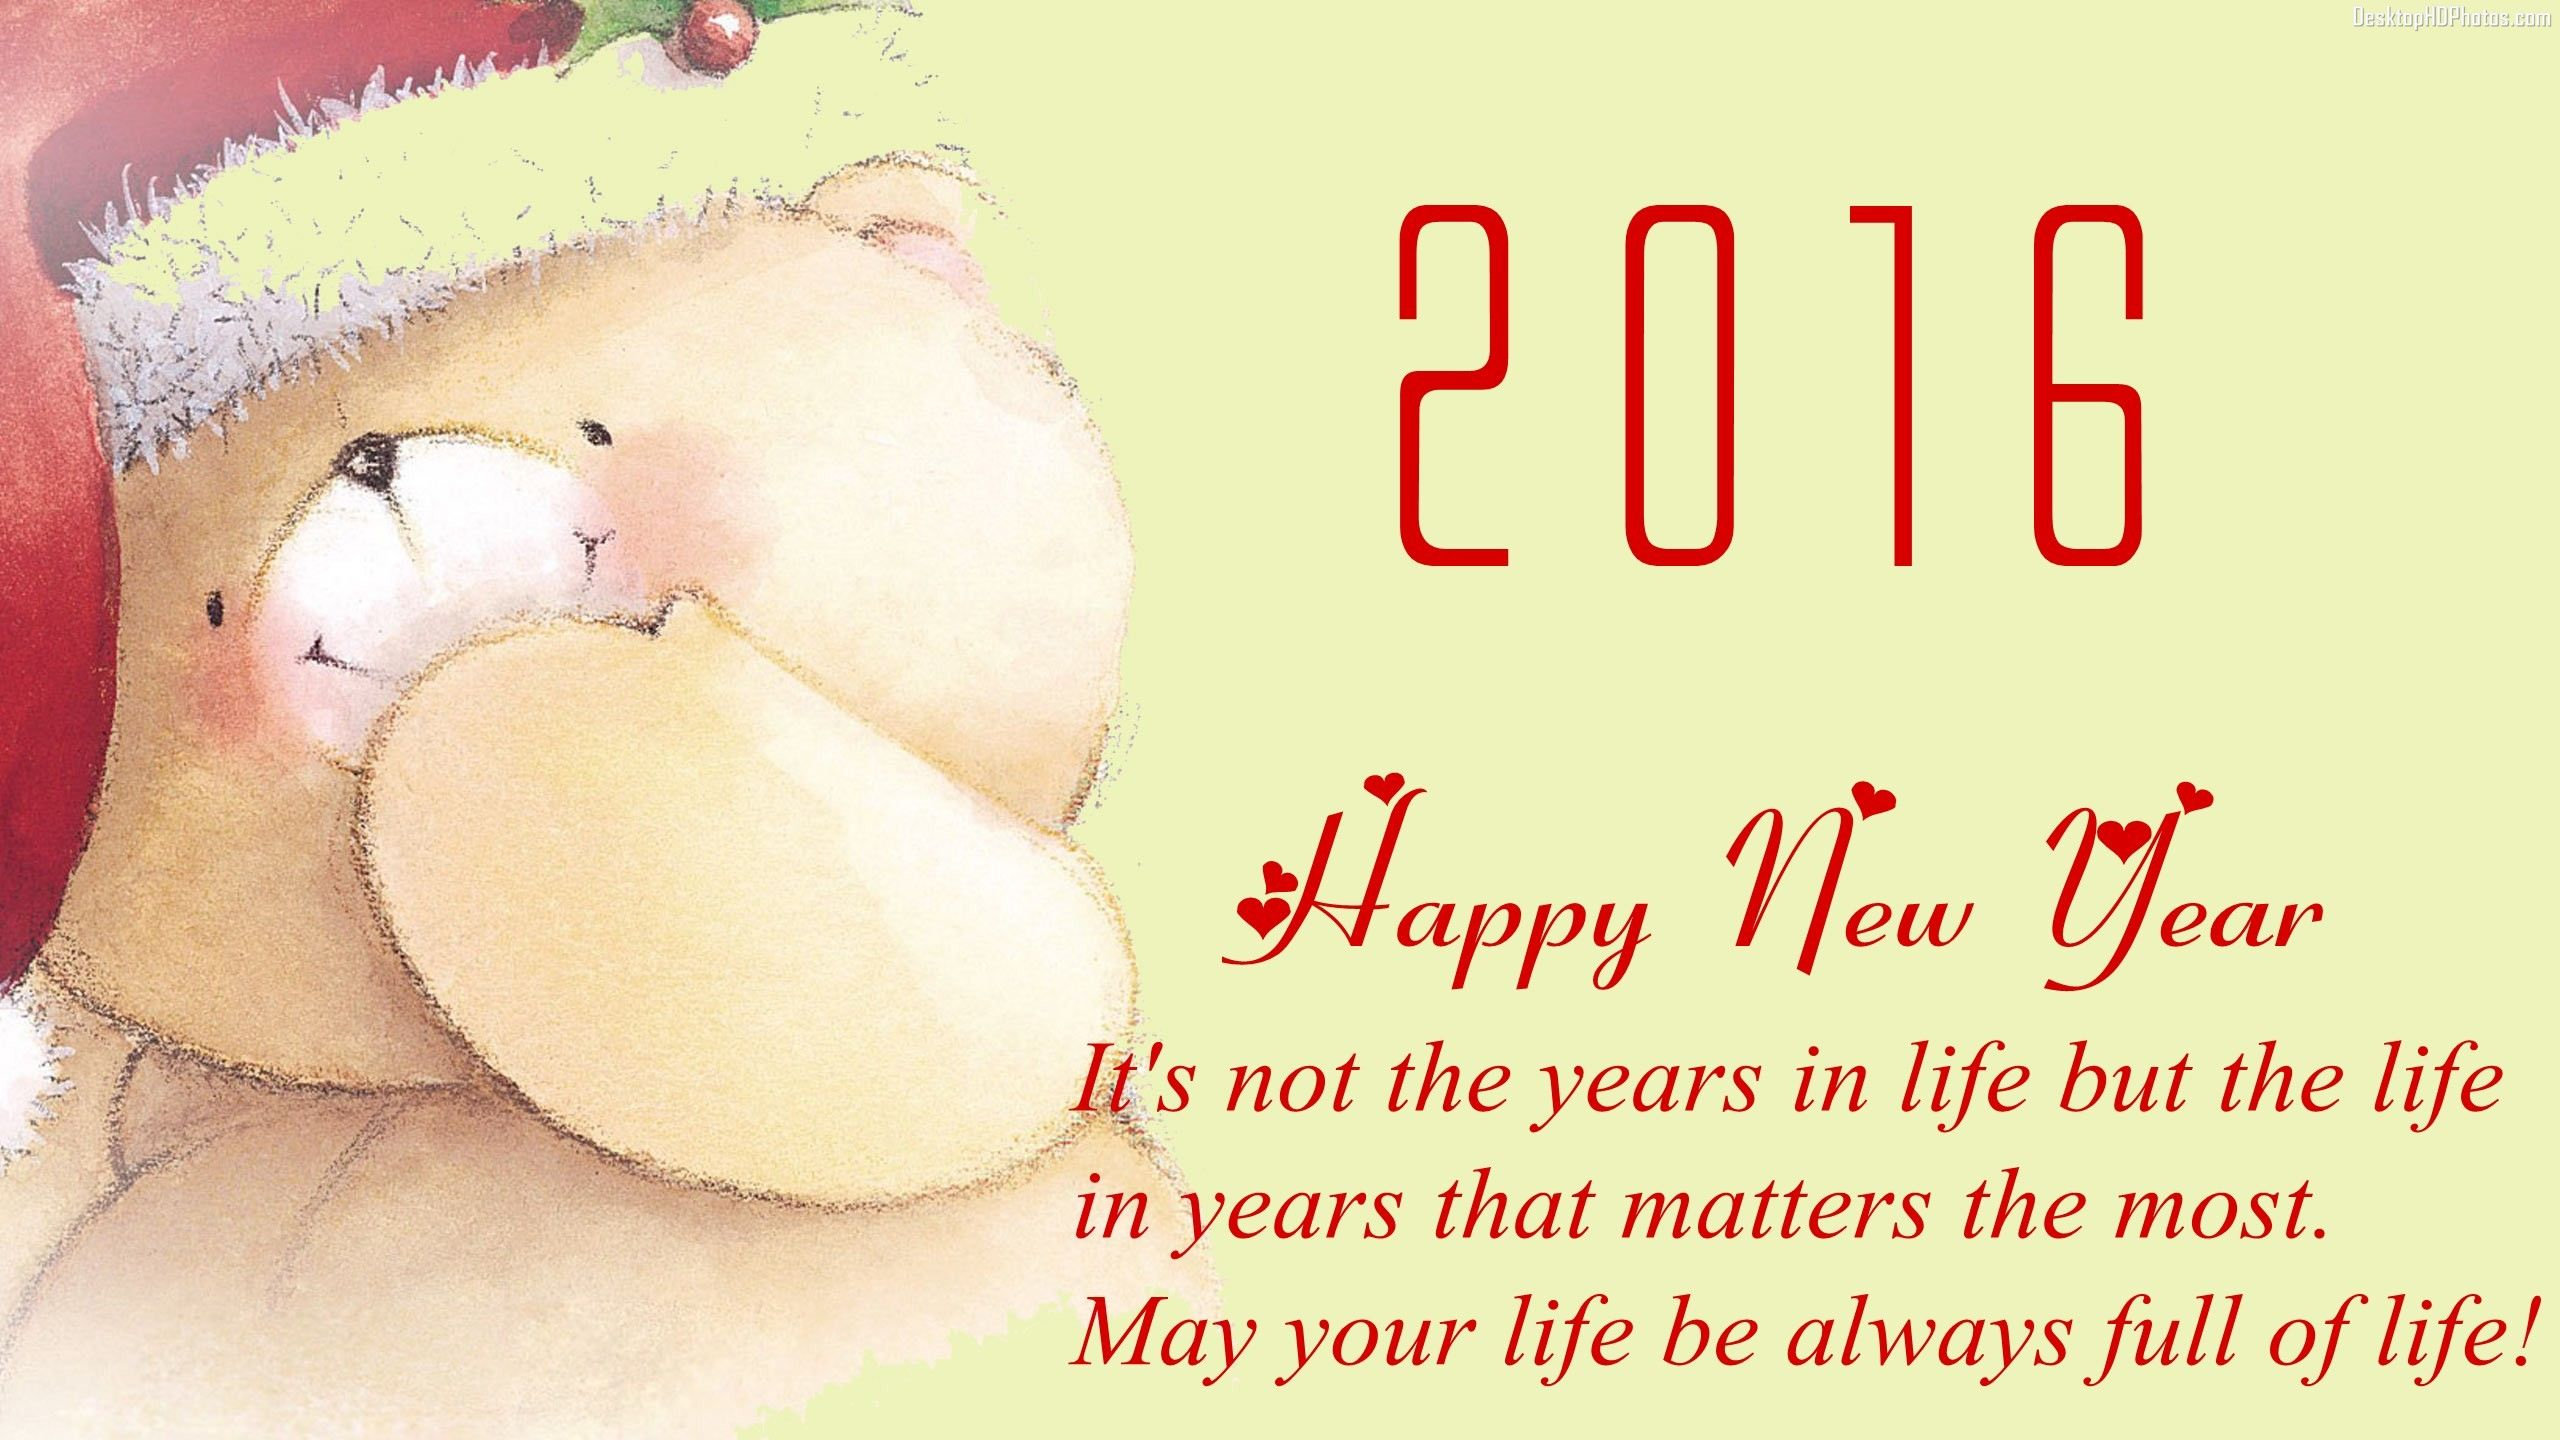 Soulful Share Happy New Year 2016 New Greetings Download Free Happy New Year 2016 New Greetings Download Free Share Http Message Happy New Year 2016 Friend Free Happy New Year Messages 2016 photos Happy New Year 2016 Message